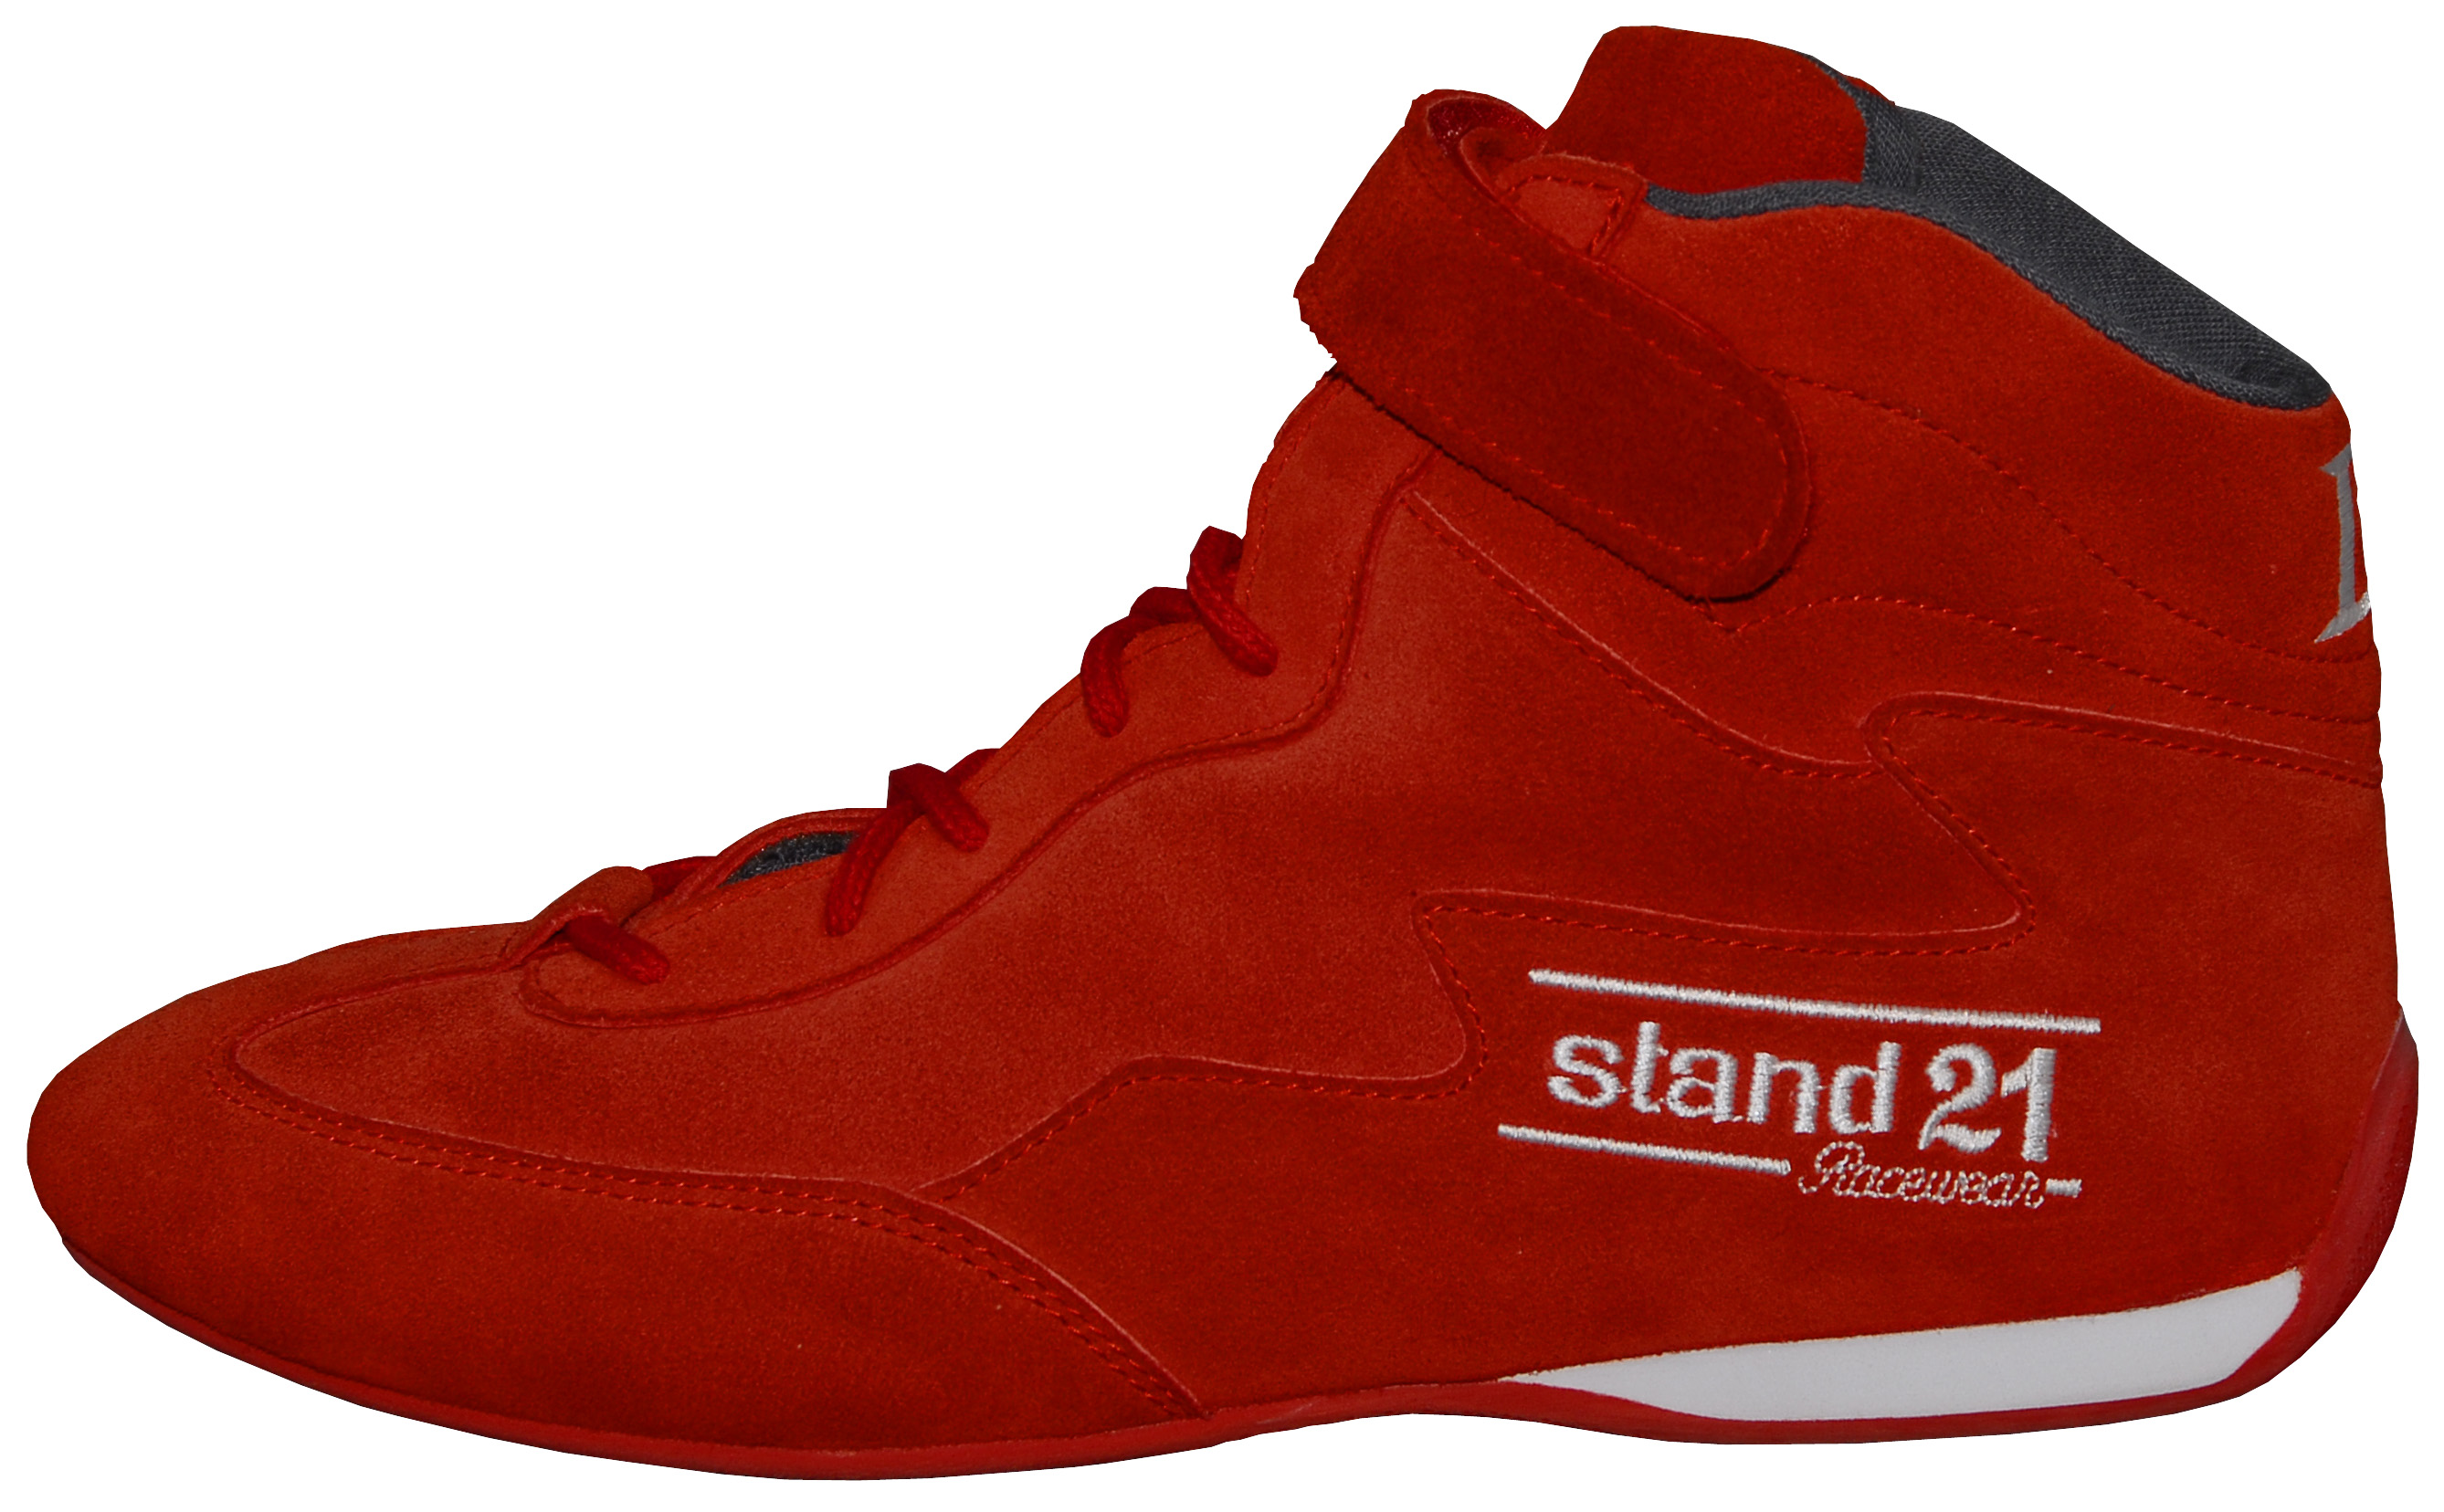 Stock red Daytona II boots